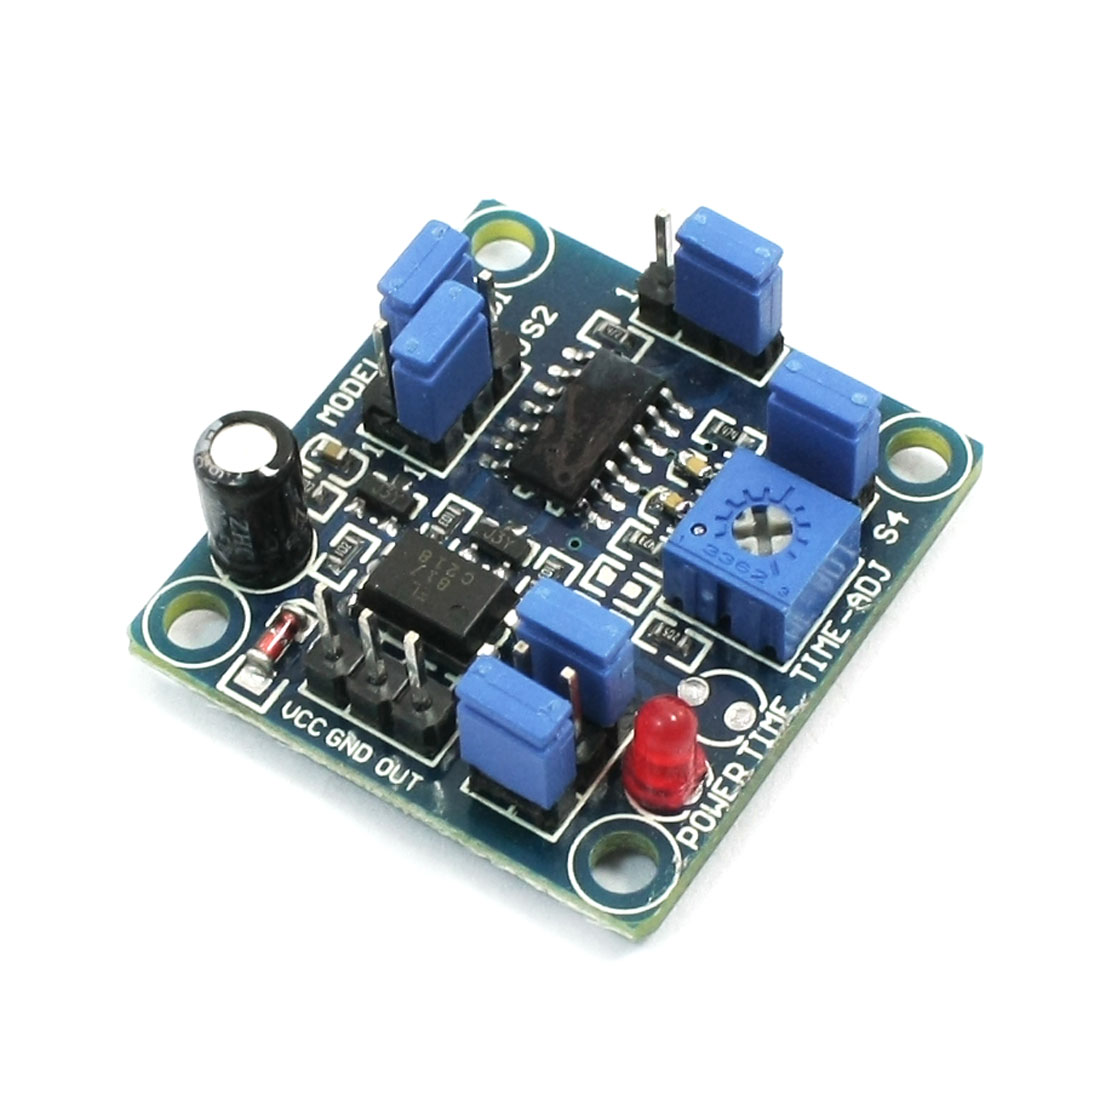 DC 4-12V High Low Level Triggered Multifunctional Delay Module Blue